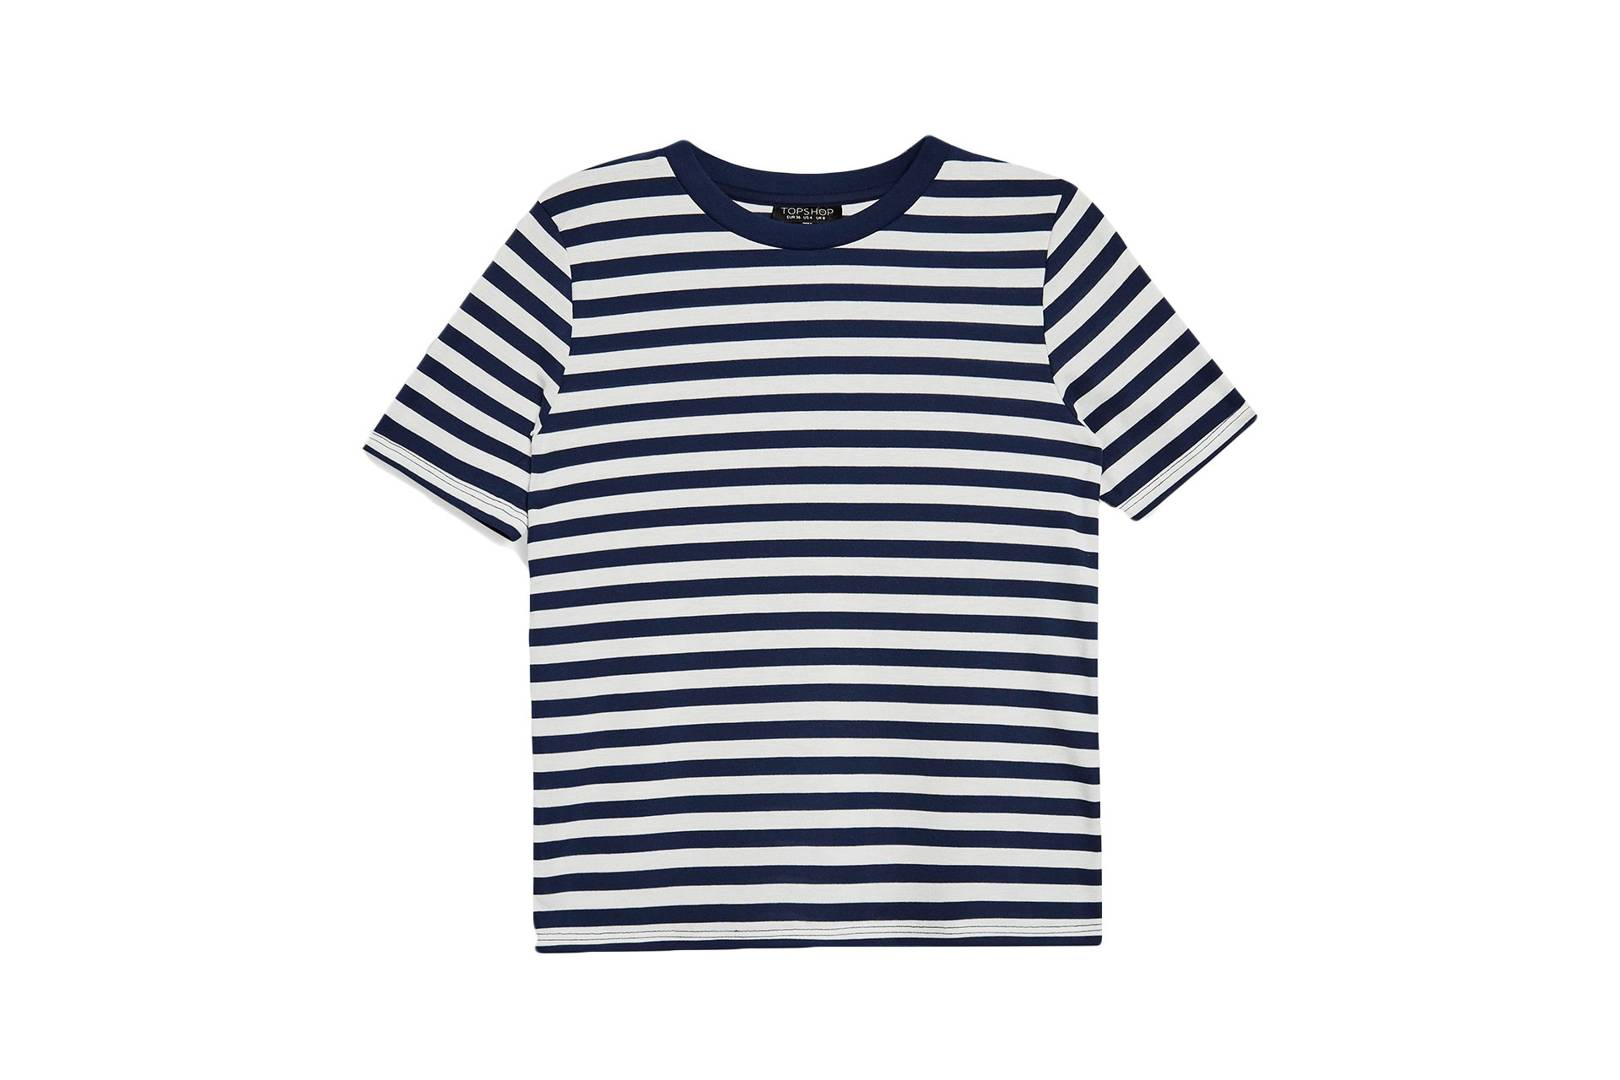 c10c79f7c18aec The Best Striped T-Shirts To Wear This Summer | British Vogue